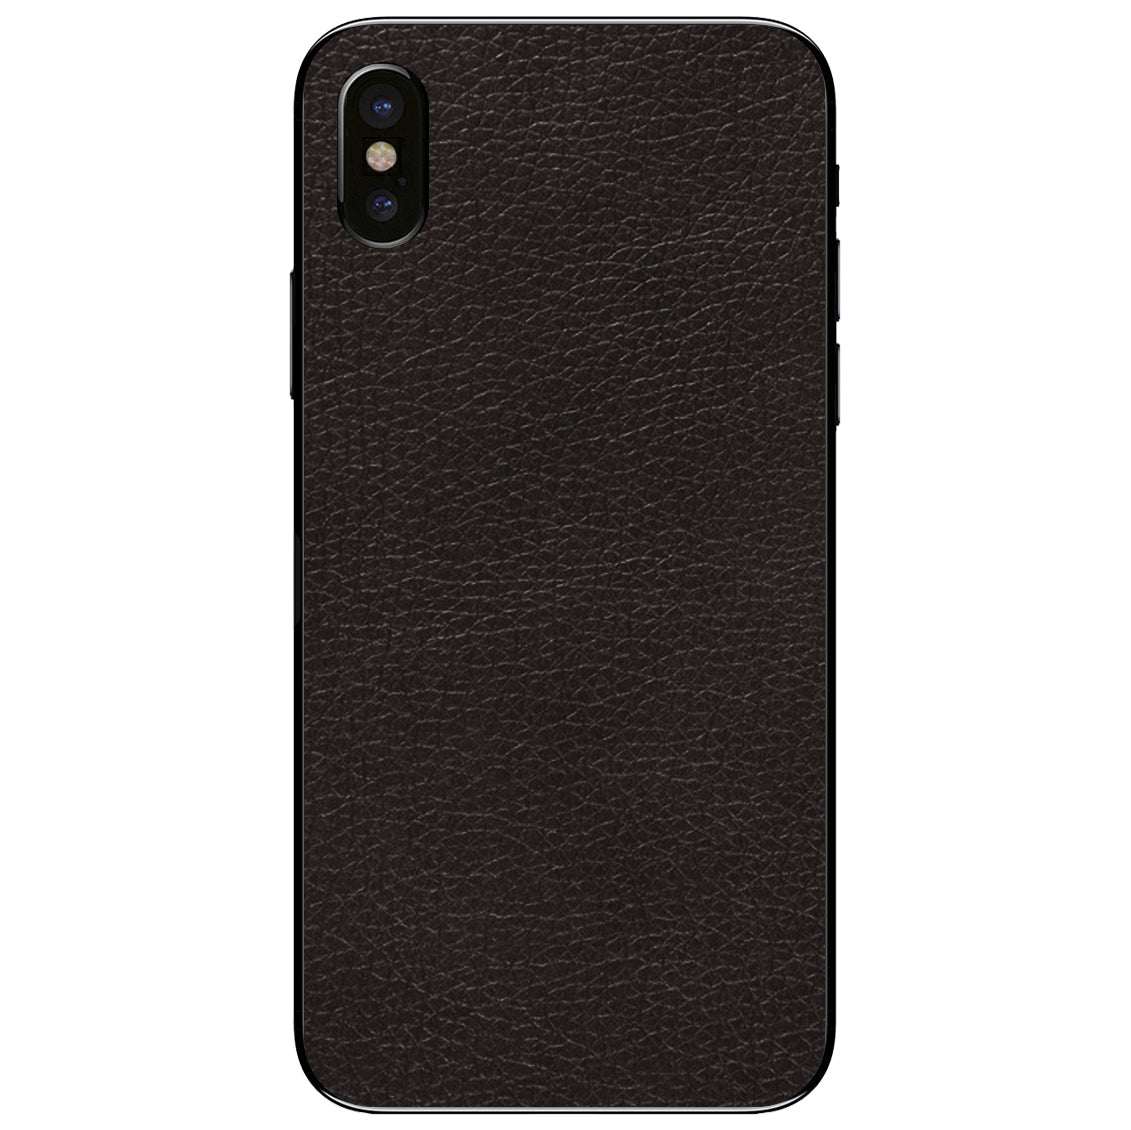 Black iPhone X Leather Skin